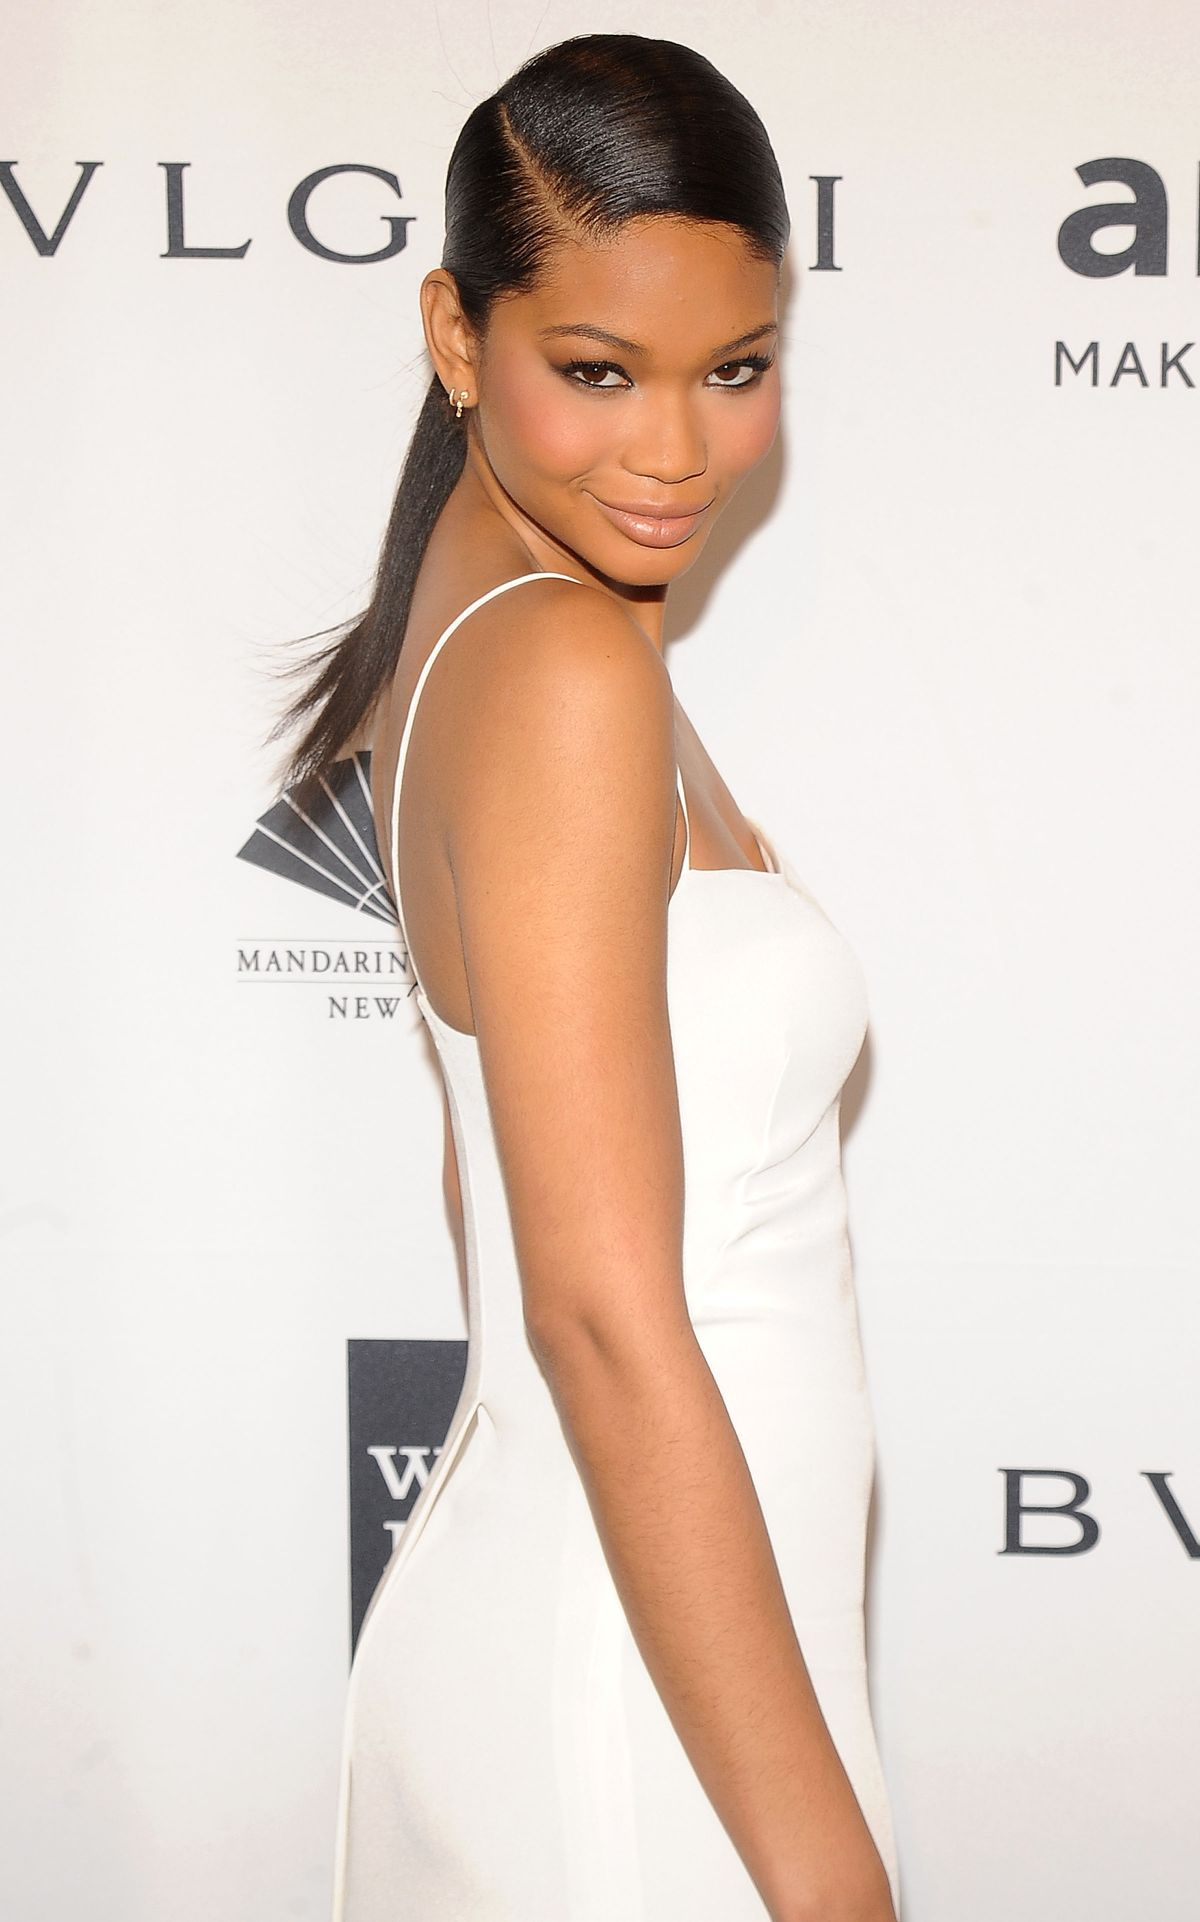 CHANEL IMAN at 2014 AMFAR Gala in New York